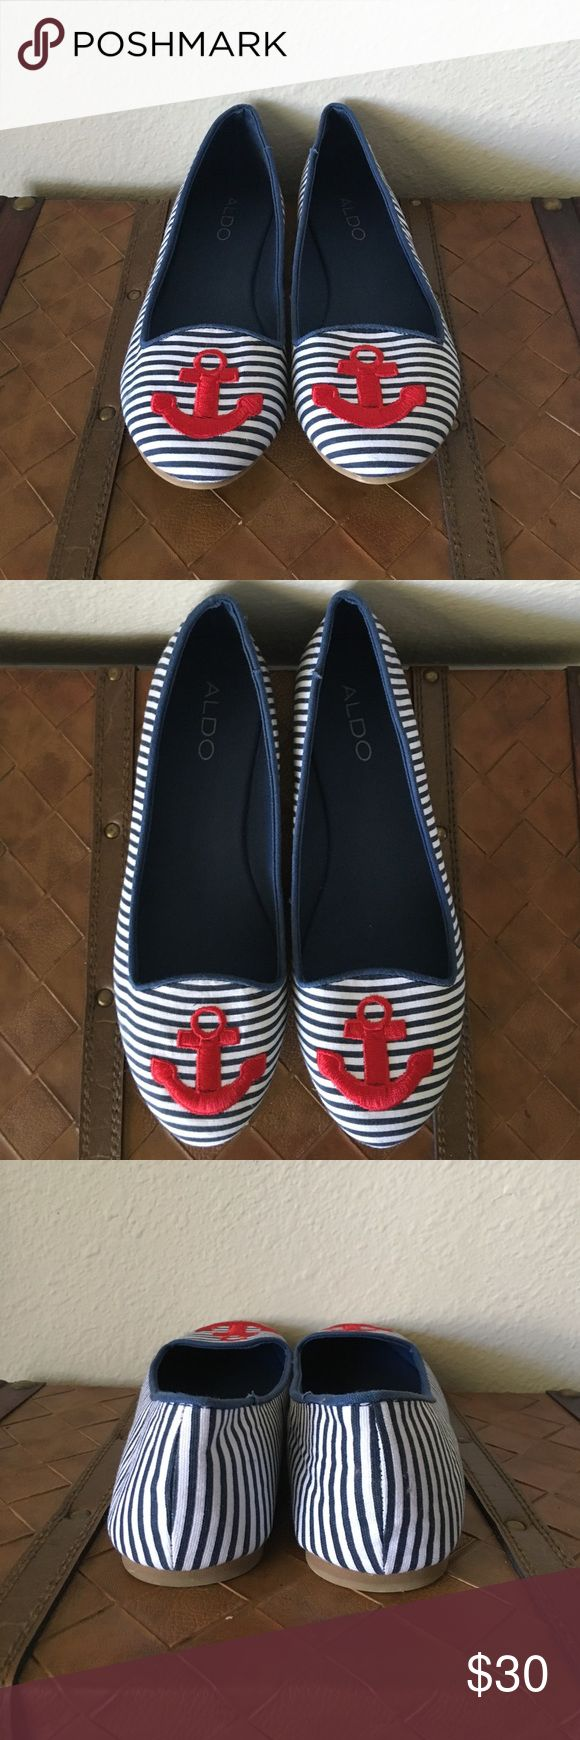 🛍CCO🛍 👉NWT👈 Aldo Nautical Flats Never worn Aldo nautical flats. Purchased for a vacation, but decided to go with another pair. Blue and white striped, with a red anchor at the toe. Size 7.5 Aldo Shoes